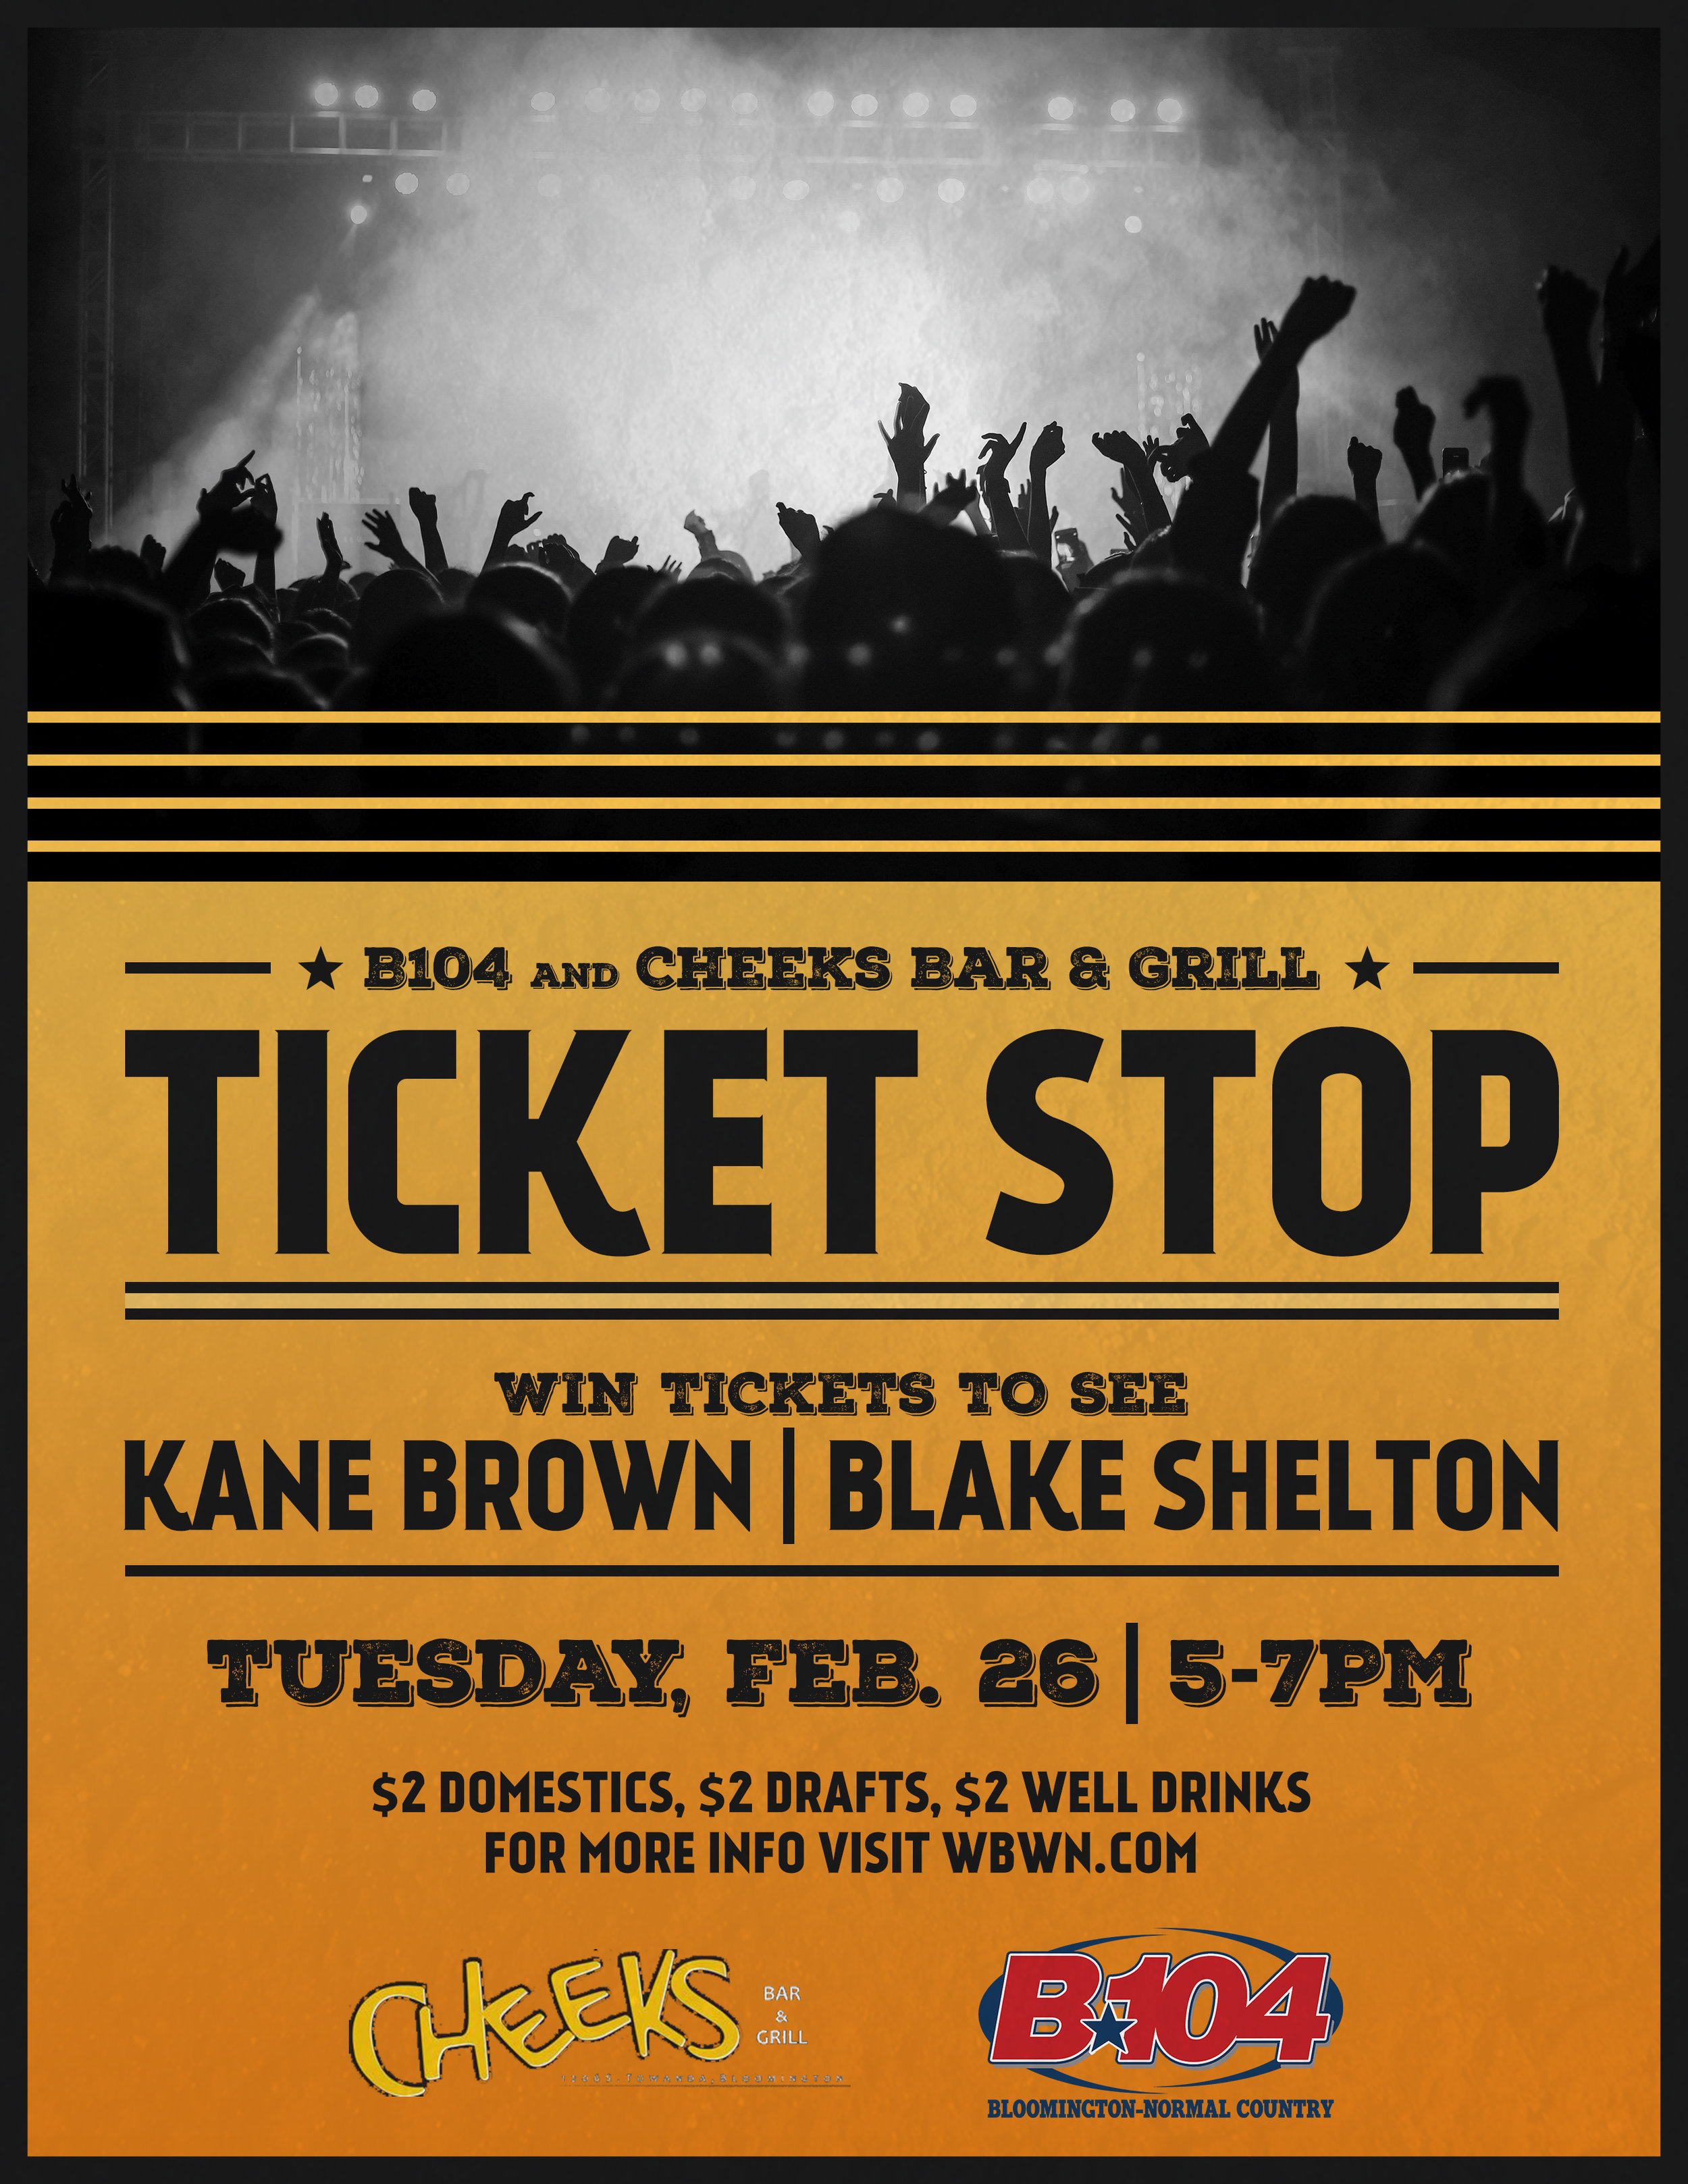 B104 and Cheeks Bar & Grill Ticket Stop Poster 2019